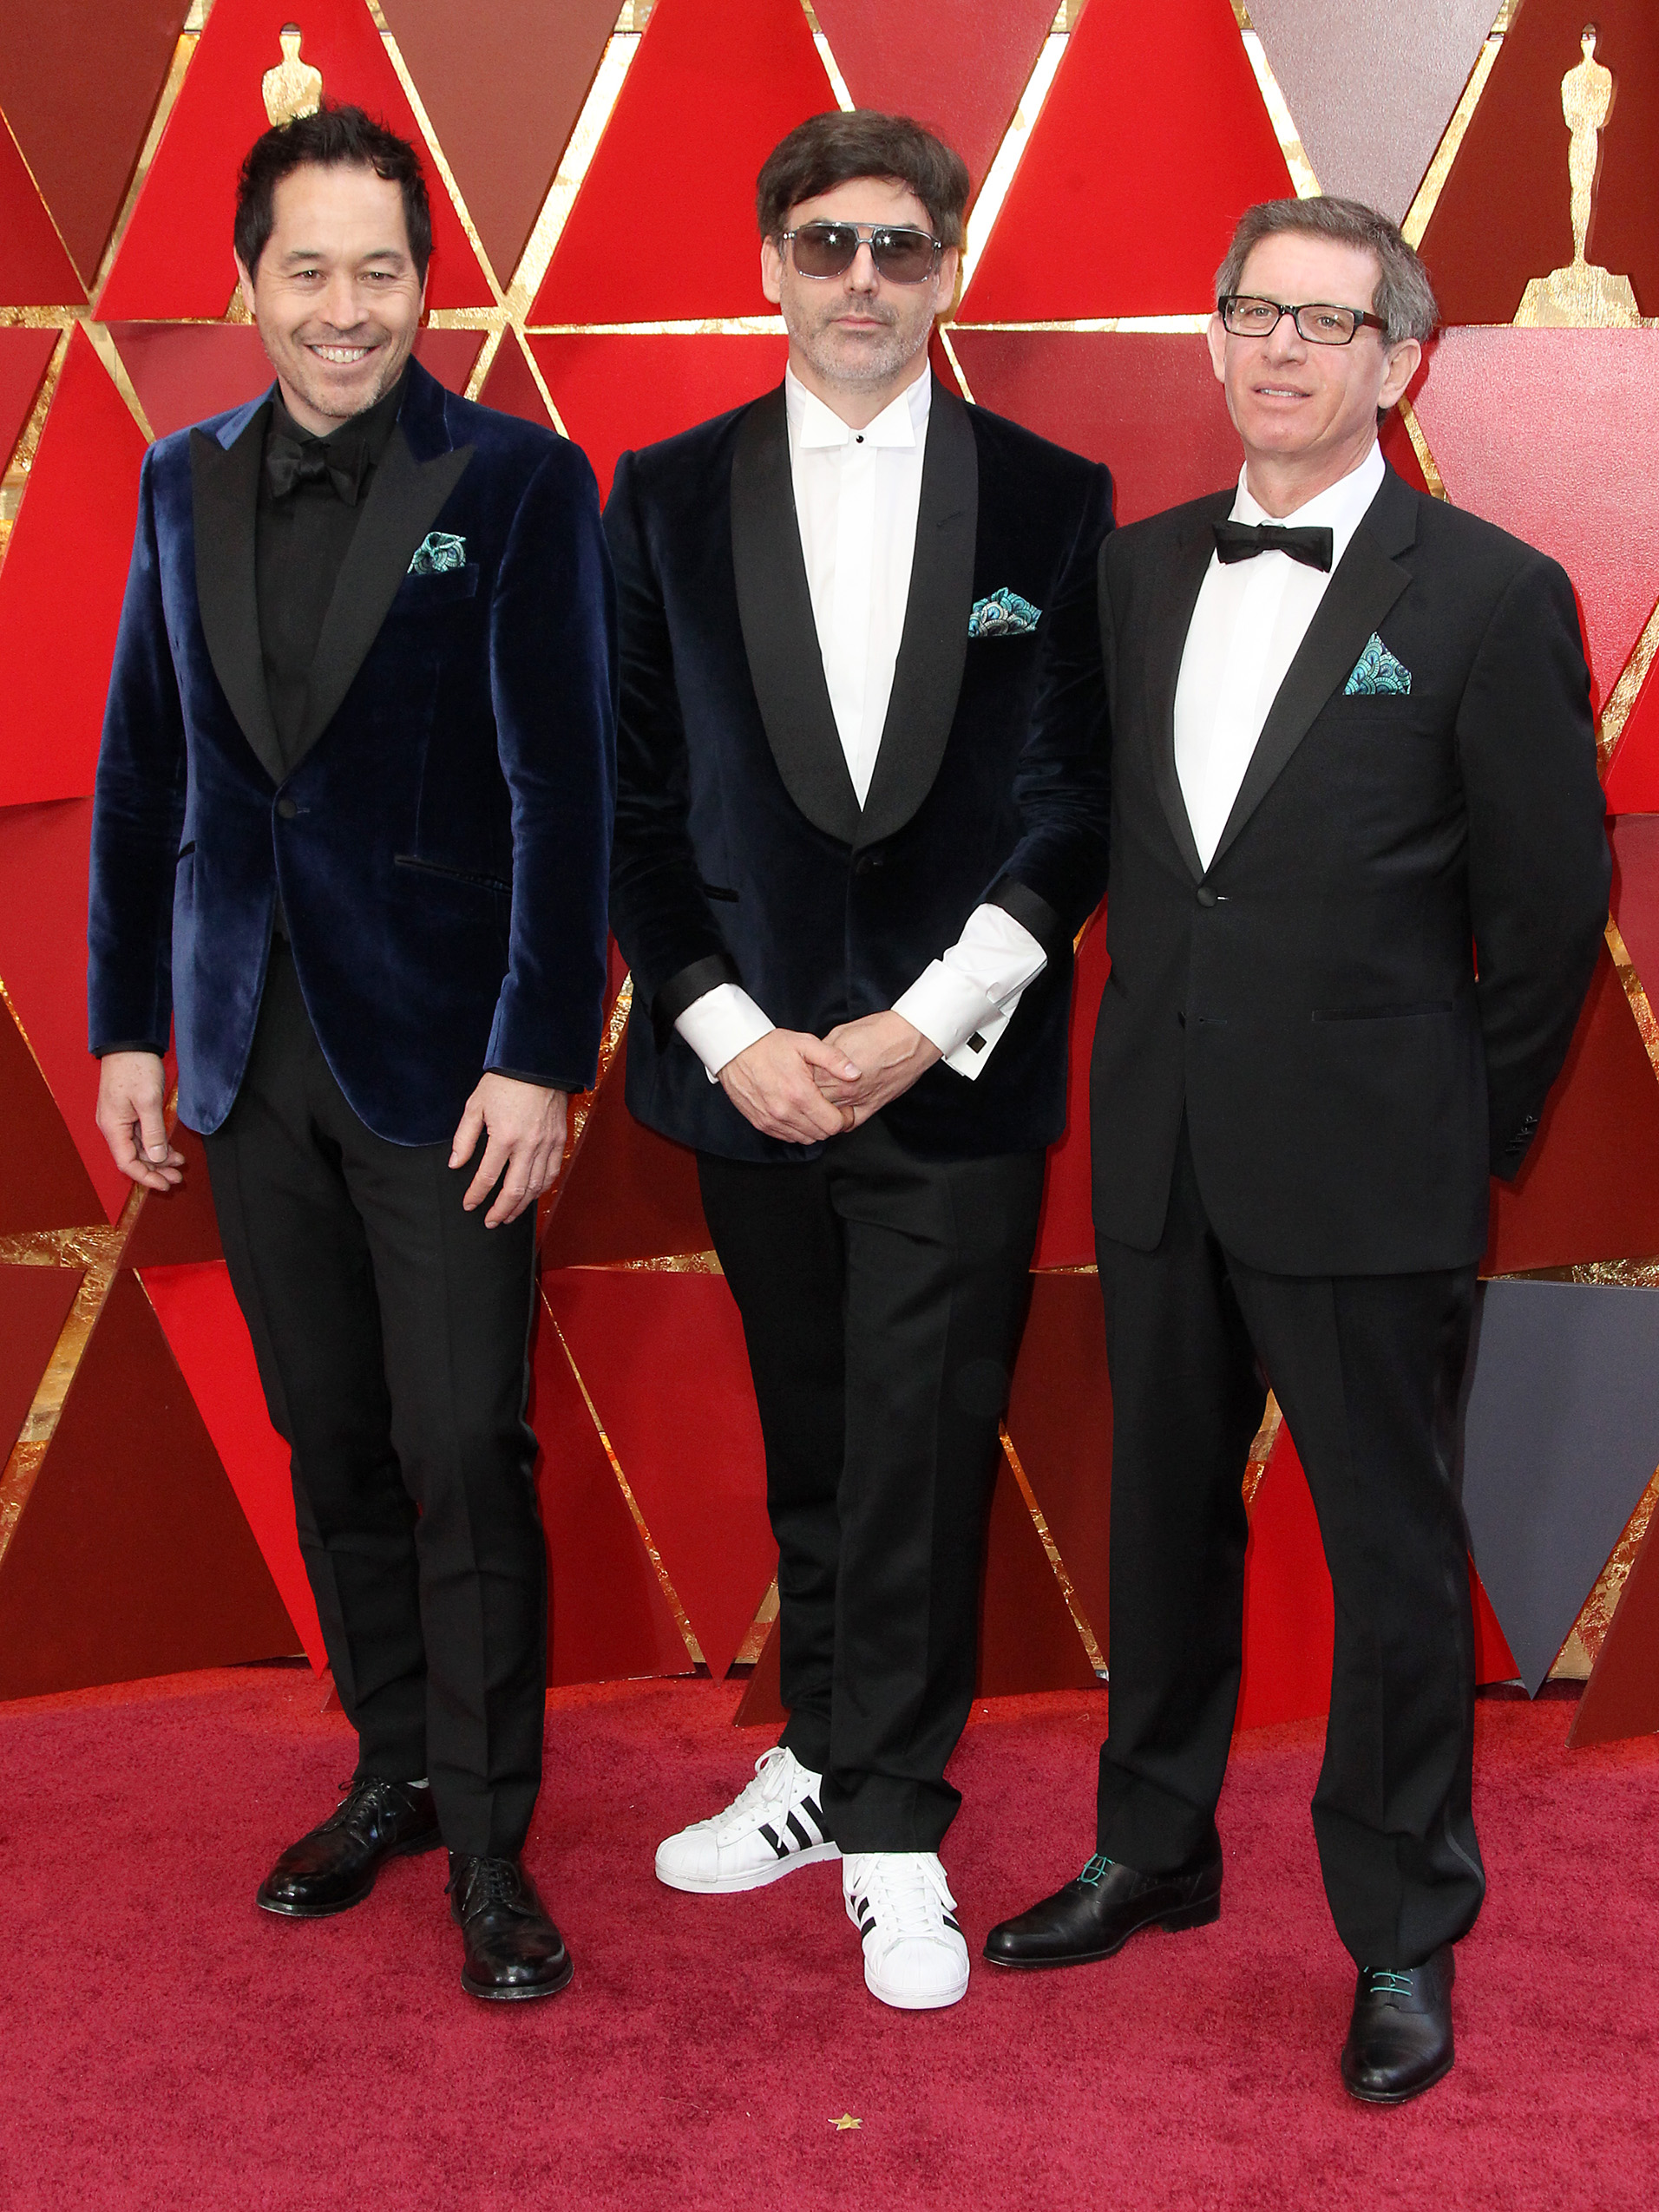 Paul Denham Austerberry, Shane Vieau and Jeffery A. Melvin{&nbsp;}arrive at the 90th Annual Academy Awards (Oscars) held at the Dolby Theater in Hollywood, California. (Image: Adriana M. Barraza/WENN.com)<p></p>